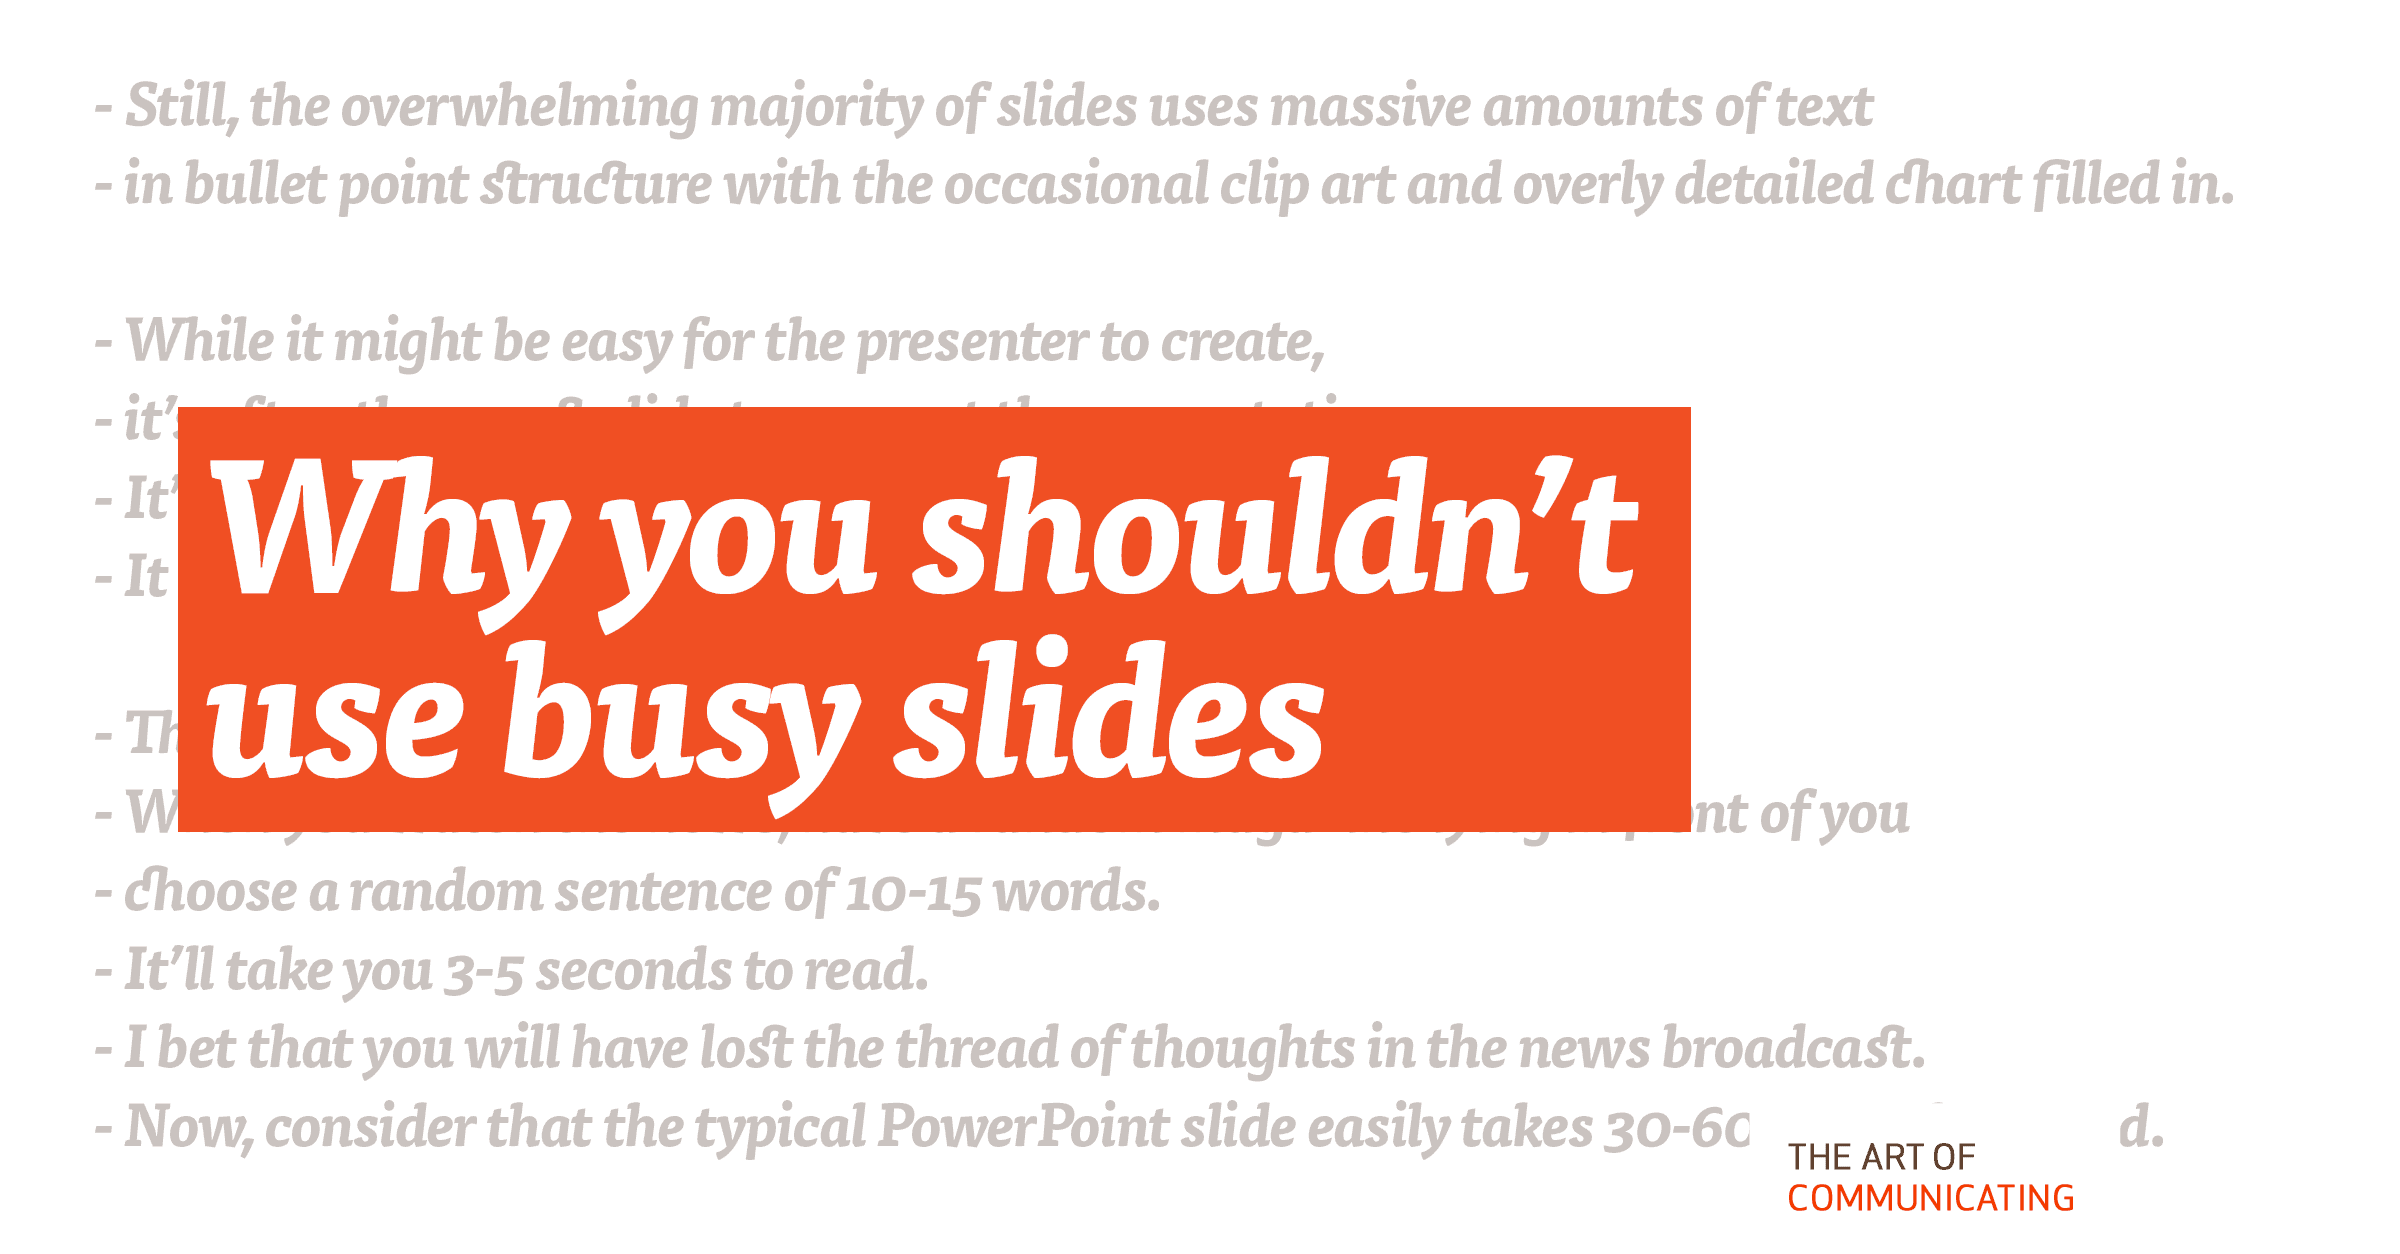 Why you shouldn't use busy slides